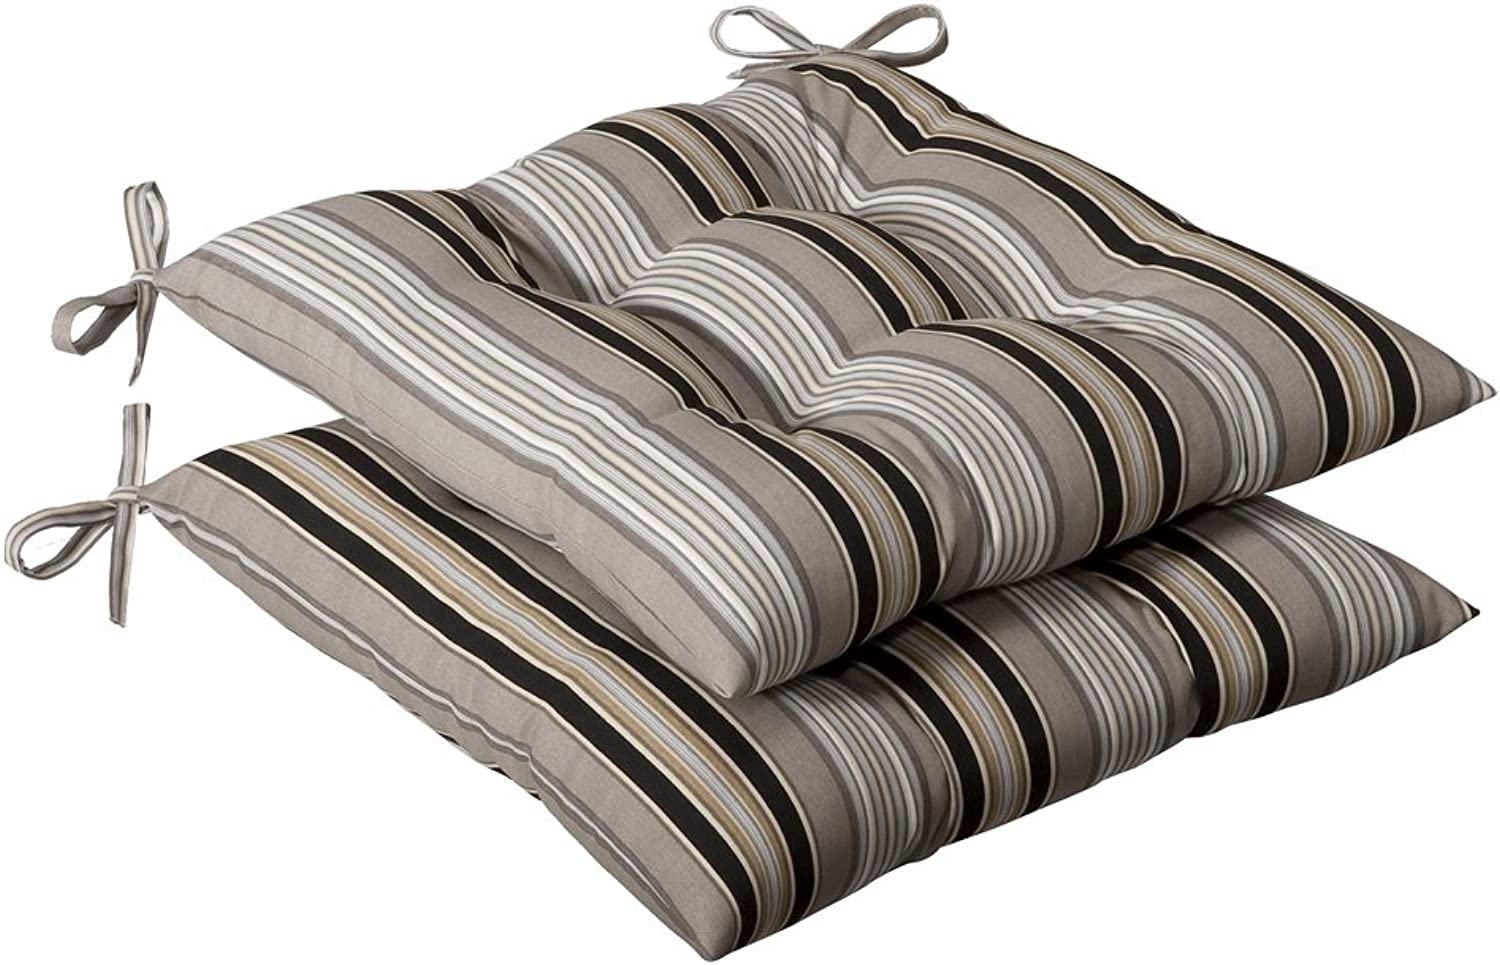 Pillow Perfect Indoor Outdoor Black Beige Striped Tufted Seat Cushion, 2-Pack